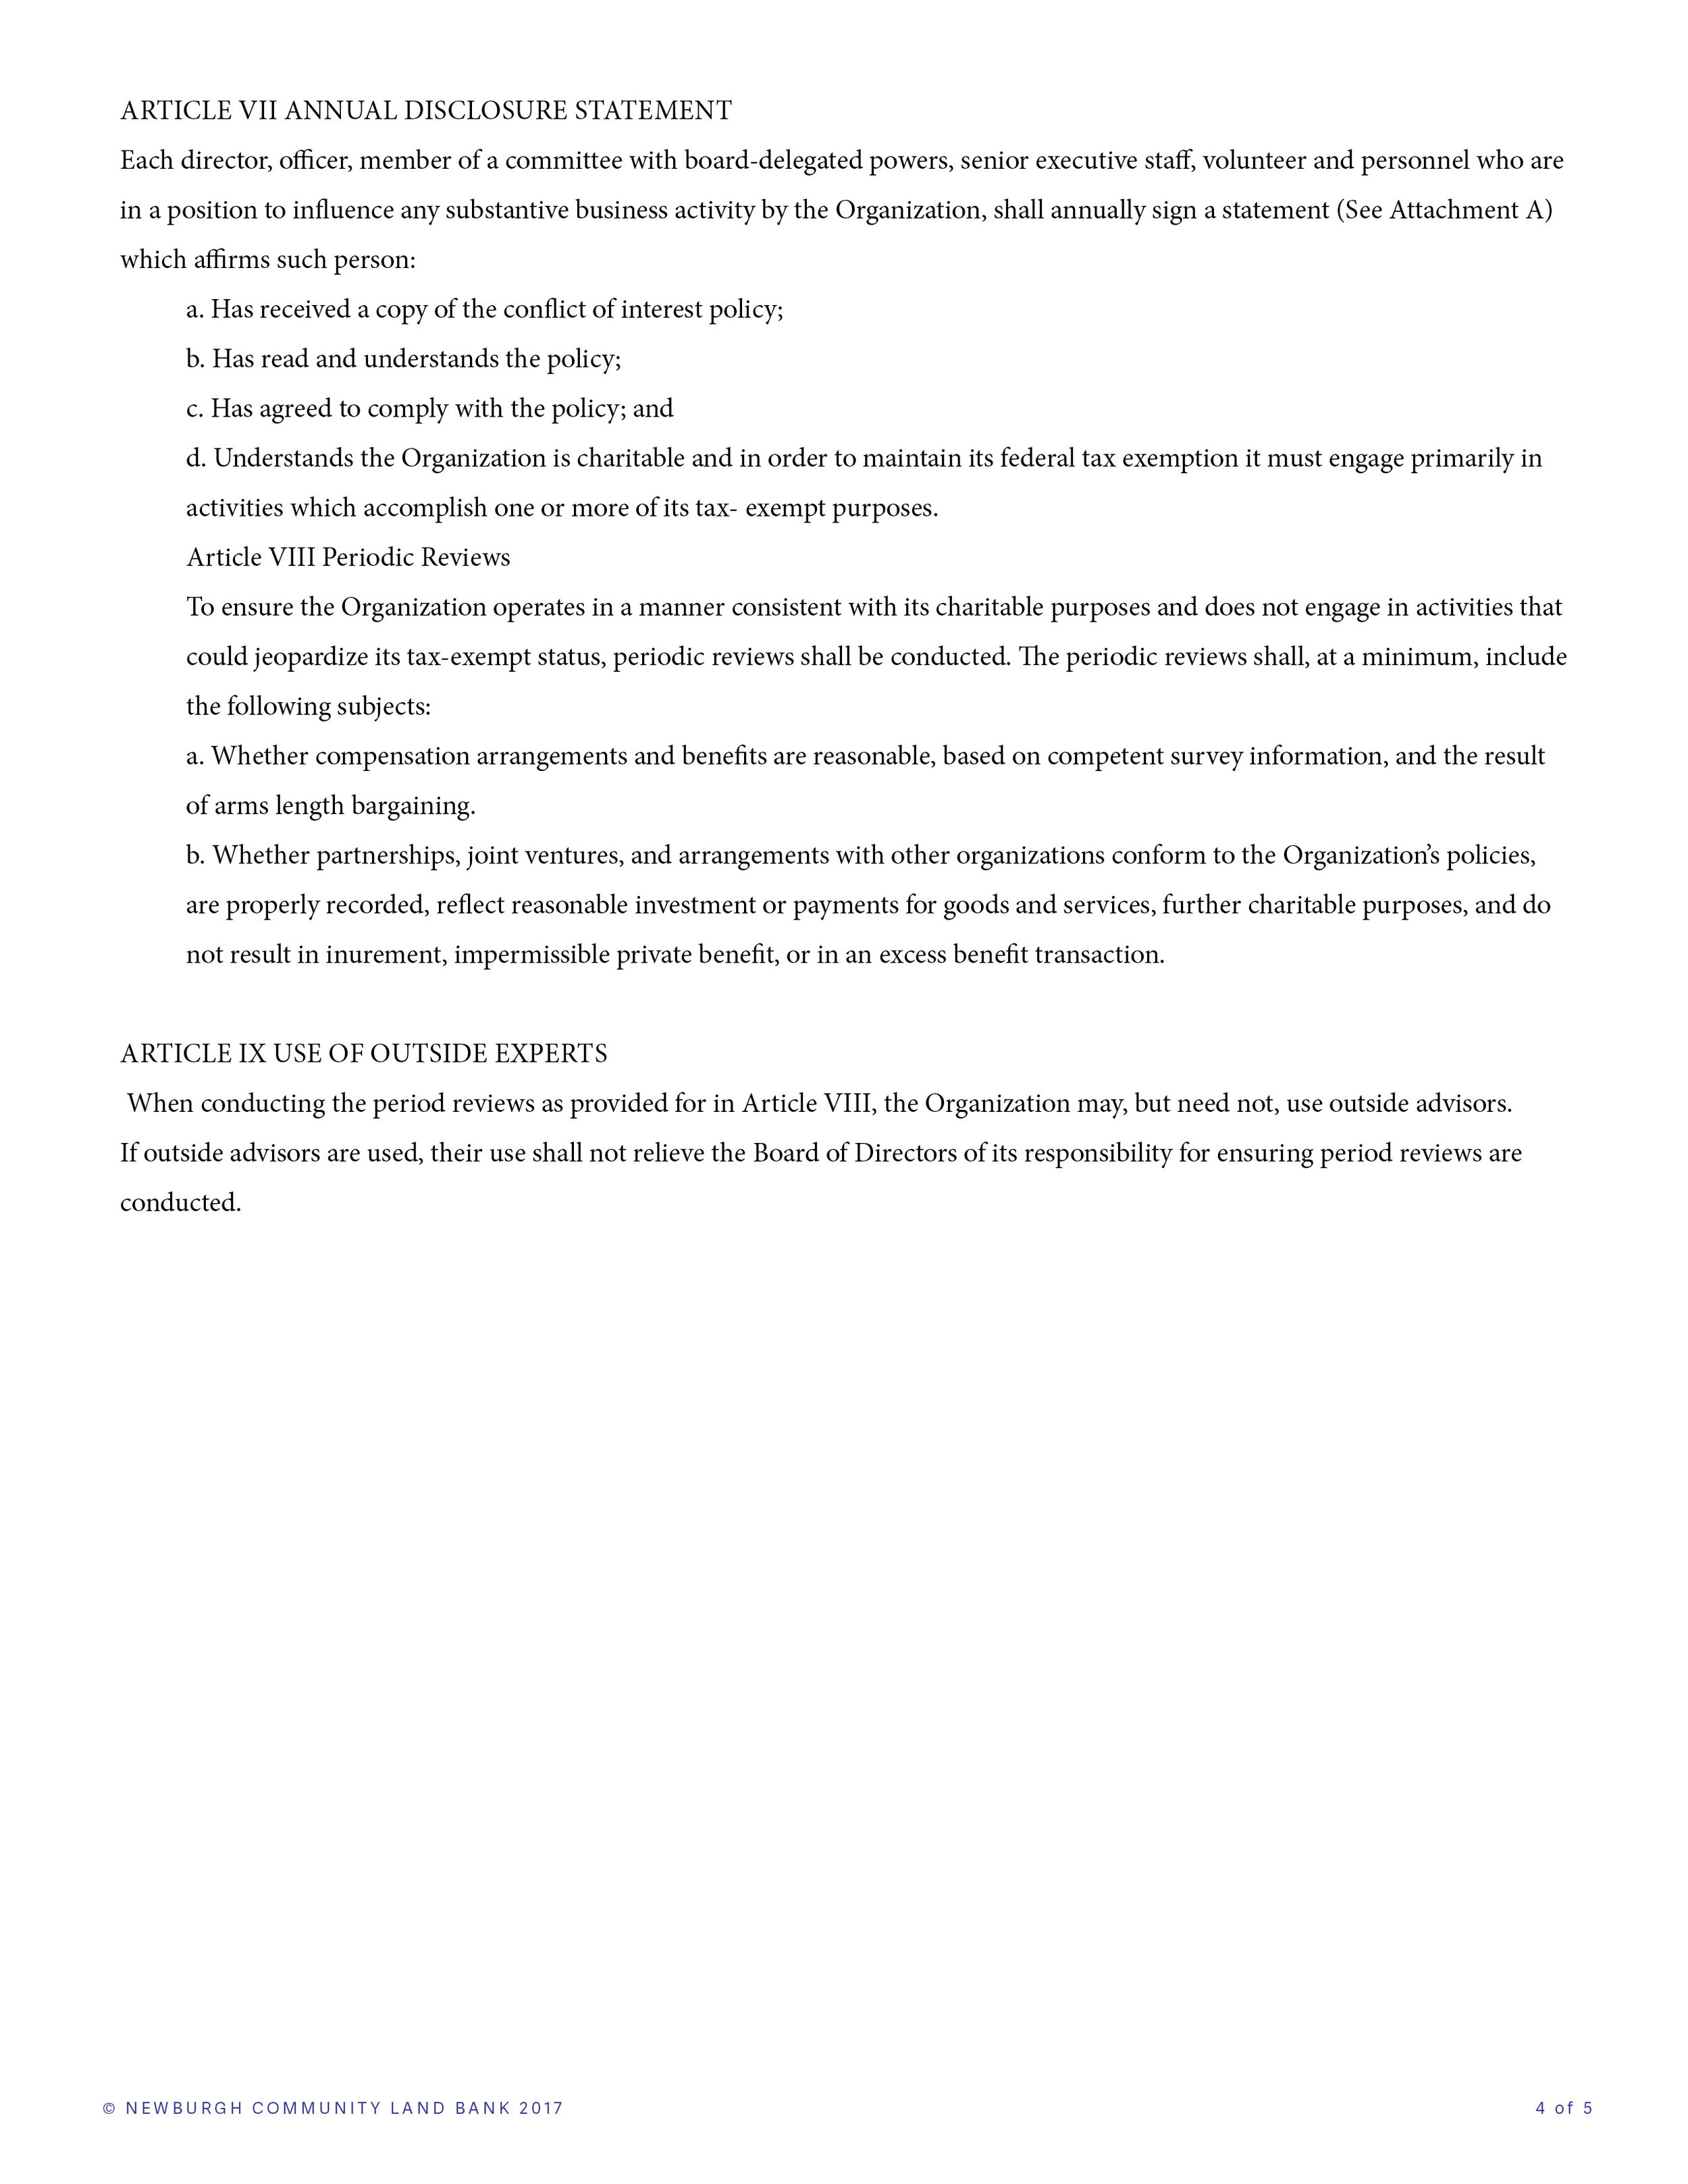 NCLB Conflict of Interest Policy4.jpg